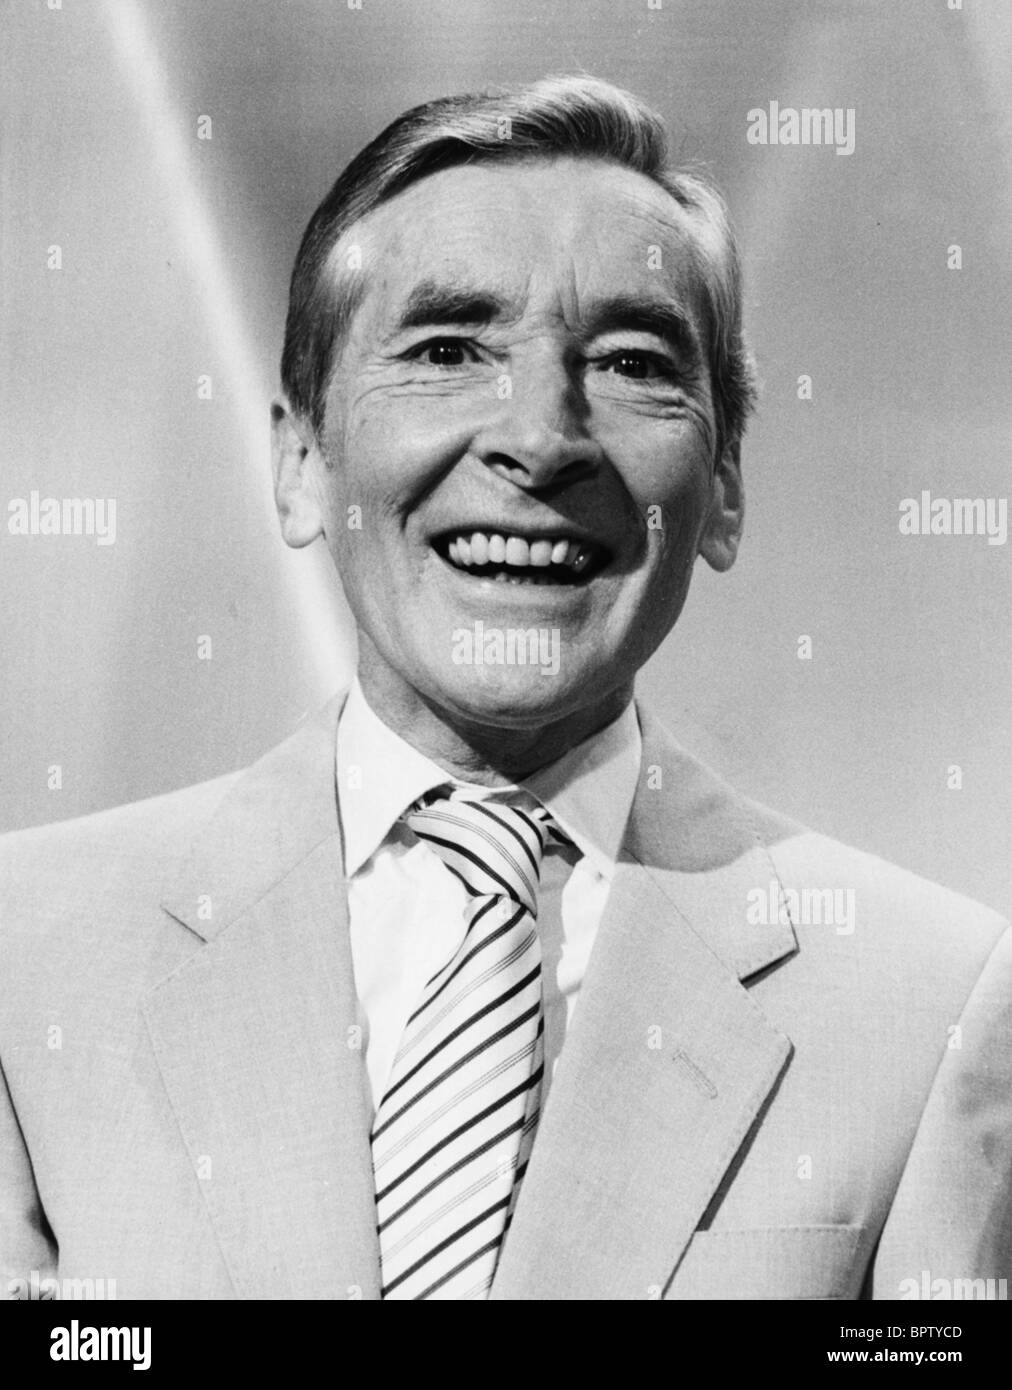 KENNETH WILLIAMS ACTOR (1973) - Stock Image